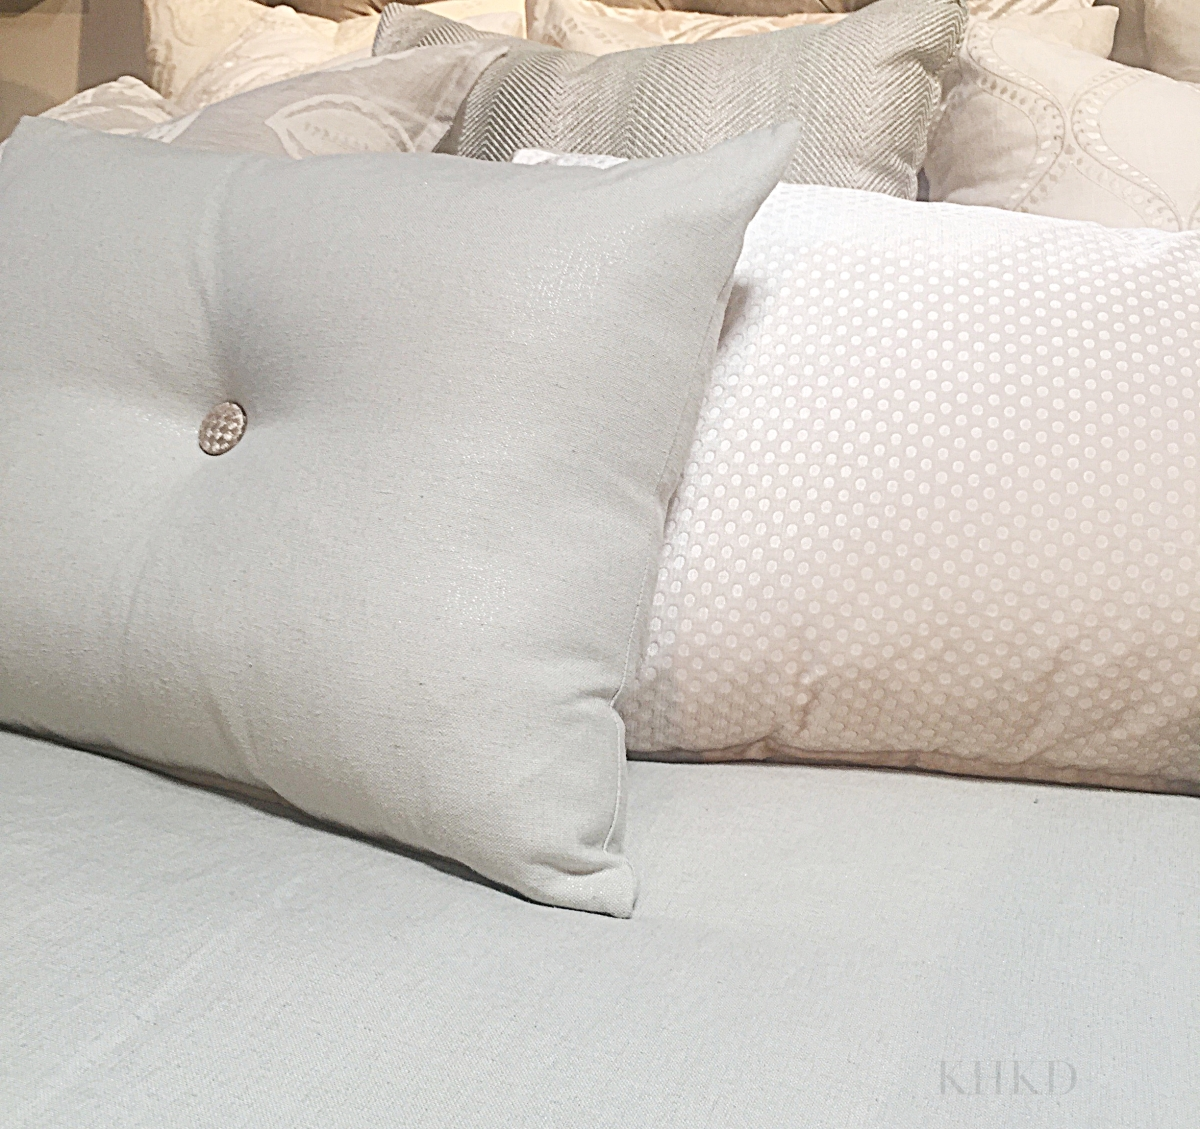 2016 fall home decor trend part i khk designs for Bedding trends 2016